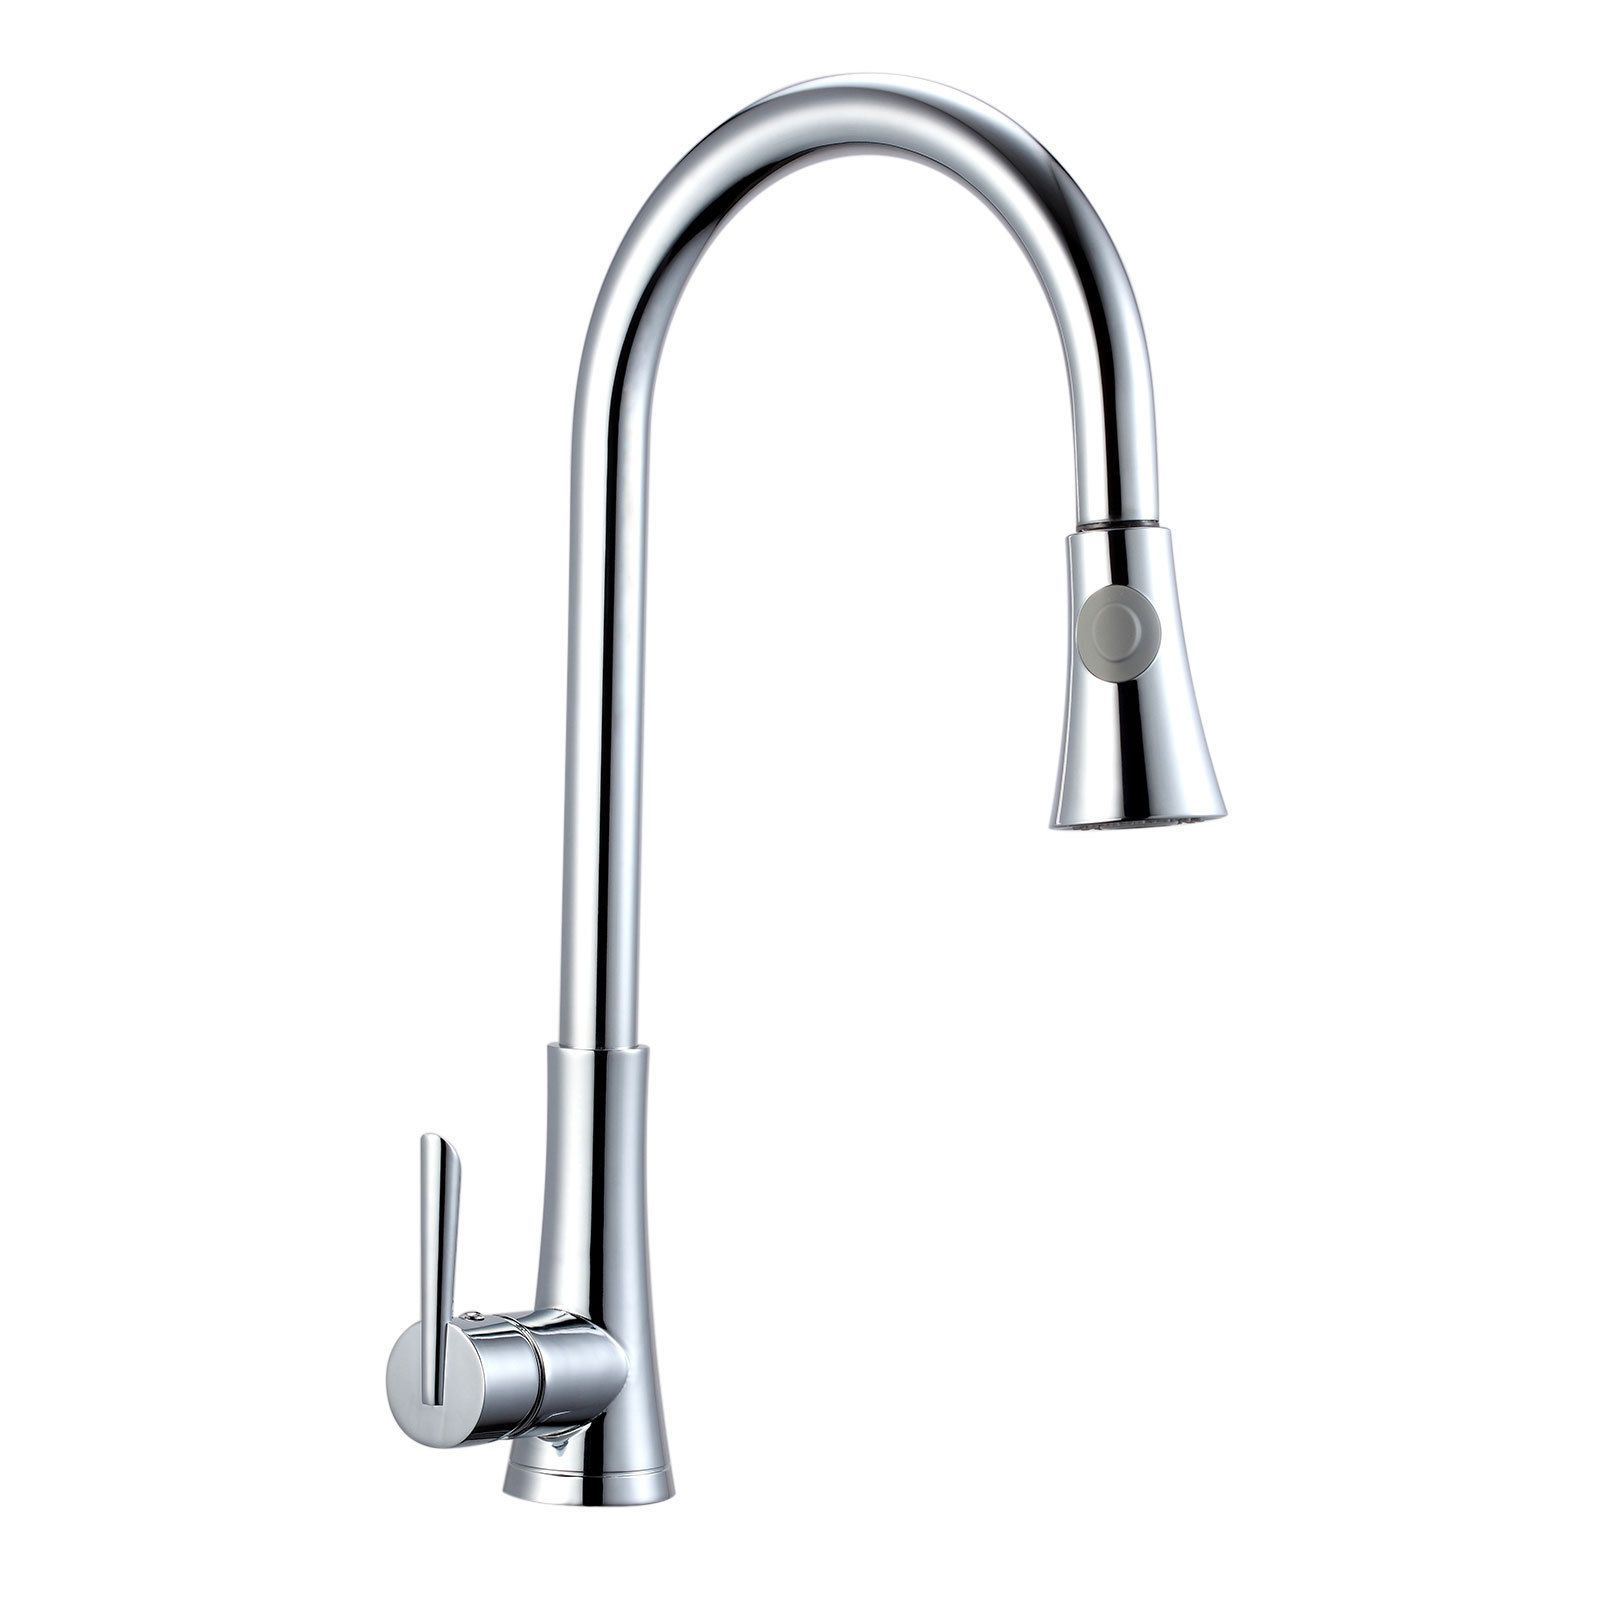 New Chrome Finish Pull out Kitchen Mixer Tap Bath Basin Sink Faucet ...